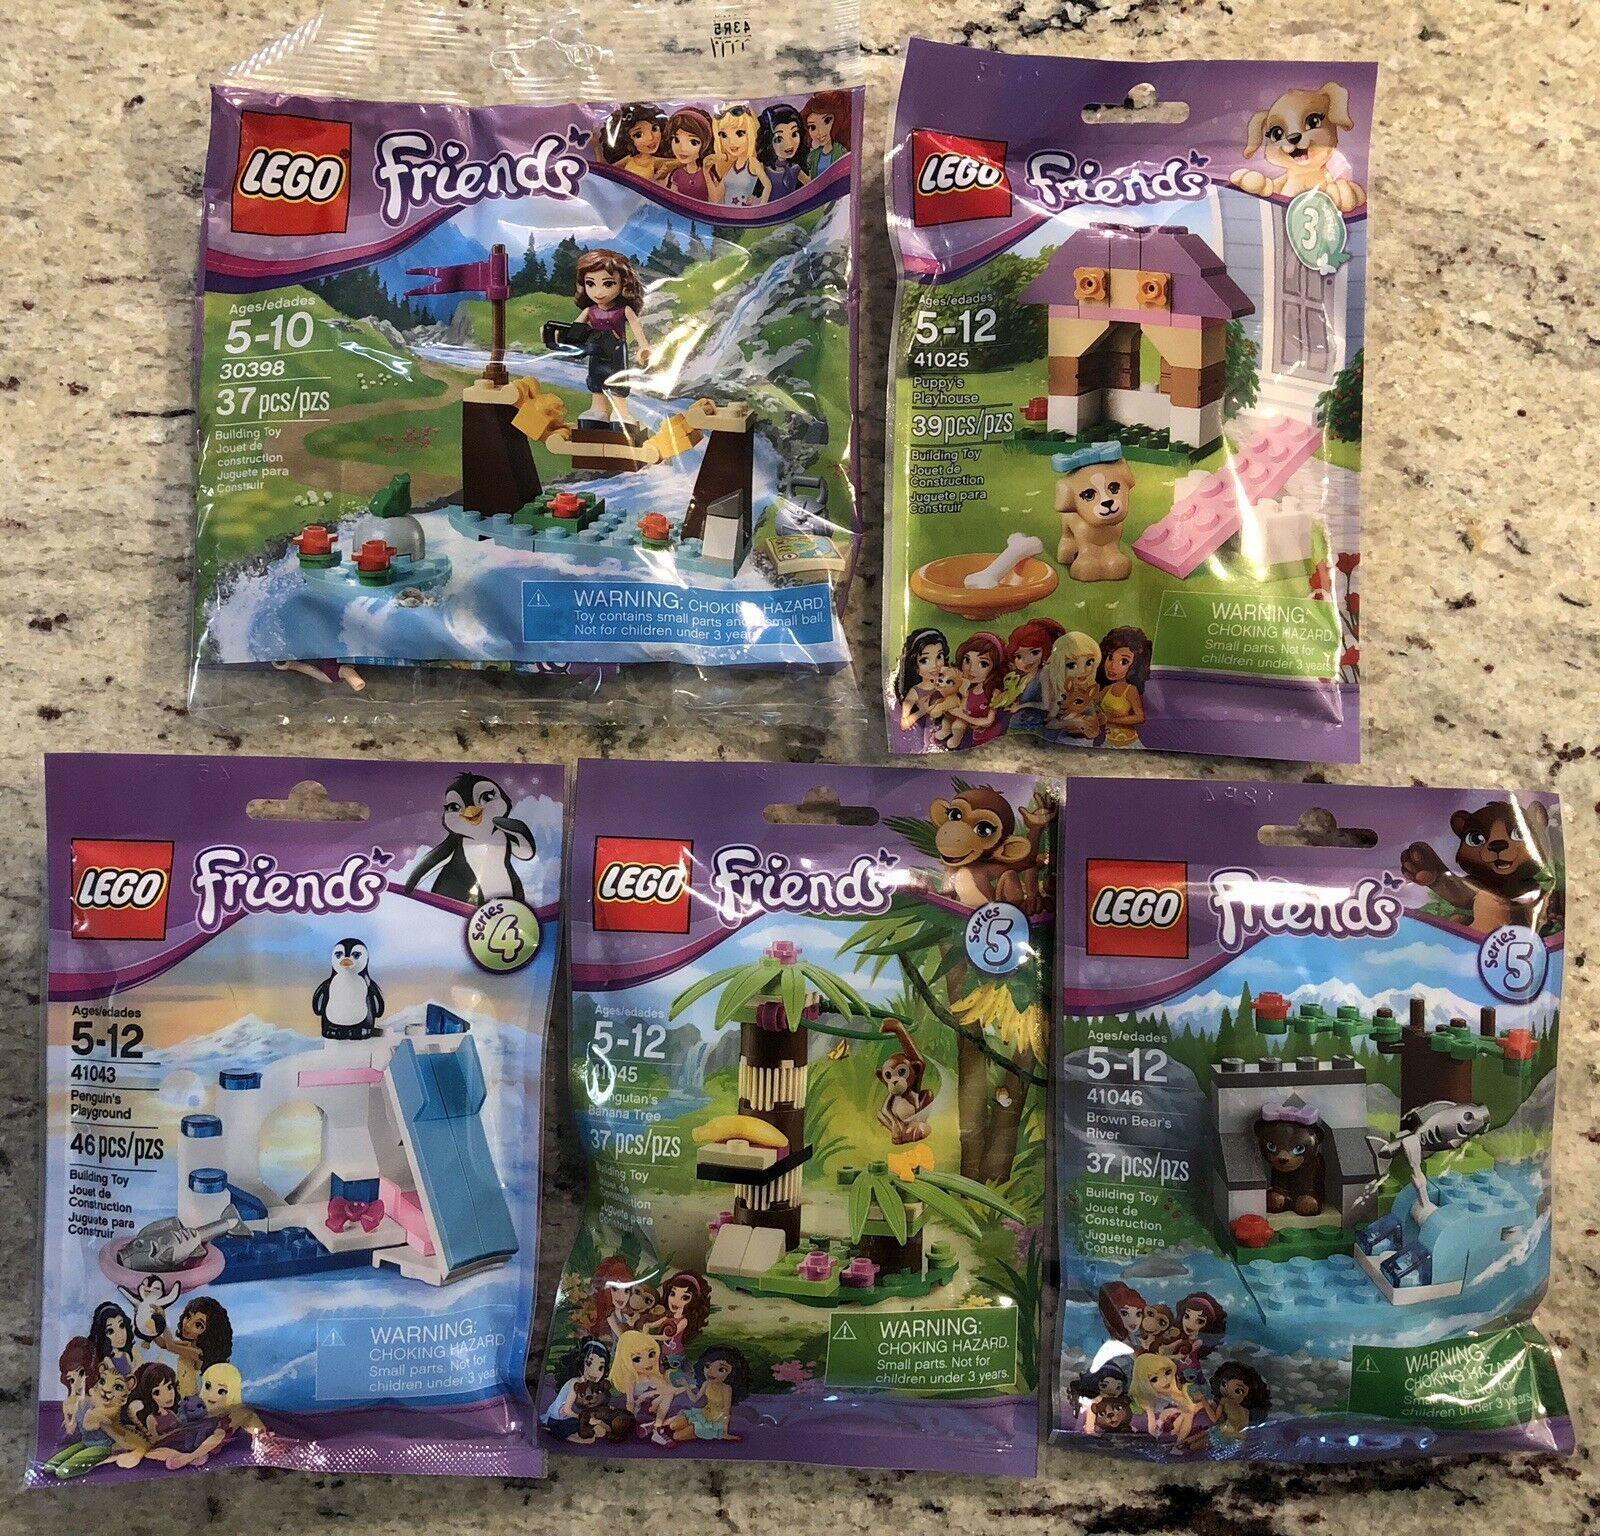 LEGO Friends Lot of 5 New Sealed Poly Bags  30398, 41025, 41043, 41045, 41046